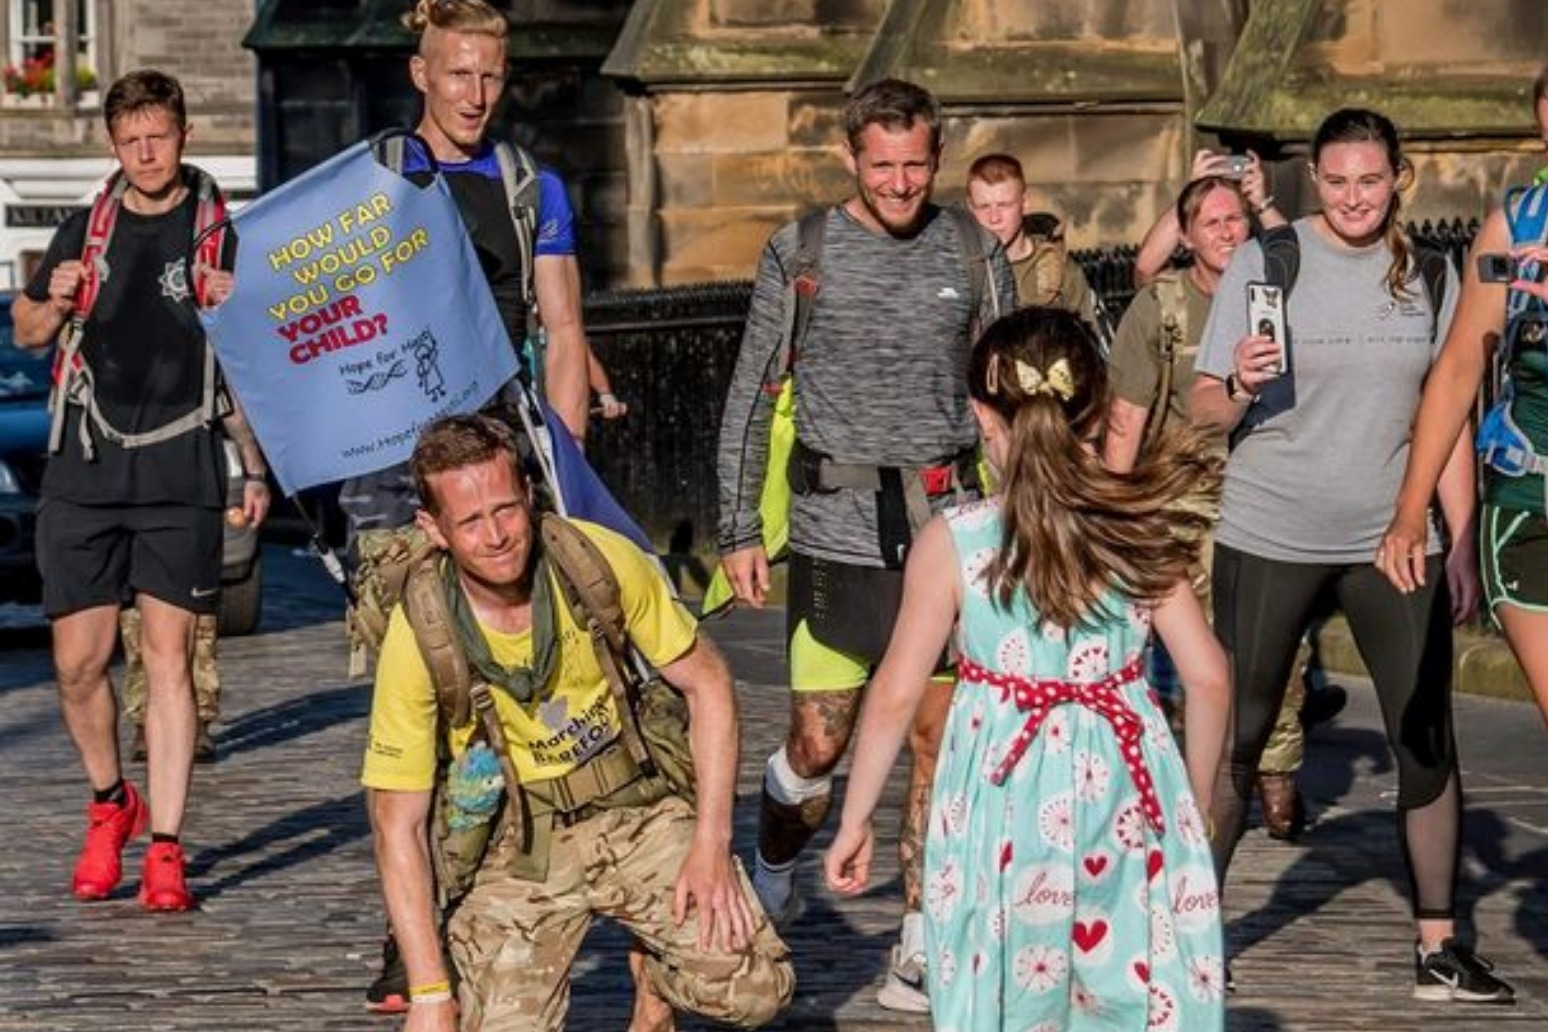 Army major to trek 1,200 miles barefoot to fund gene therapy for daughter